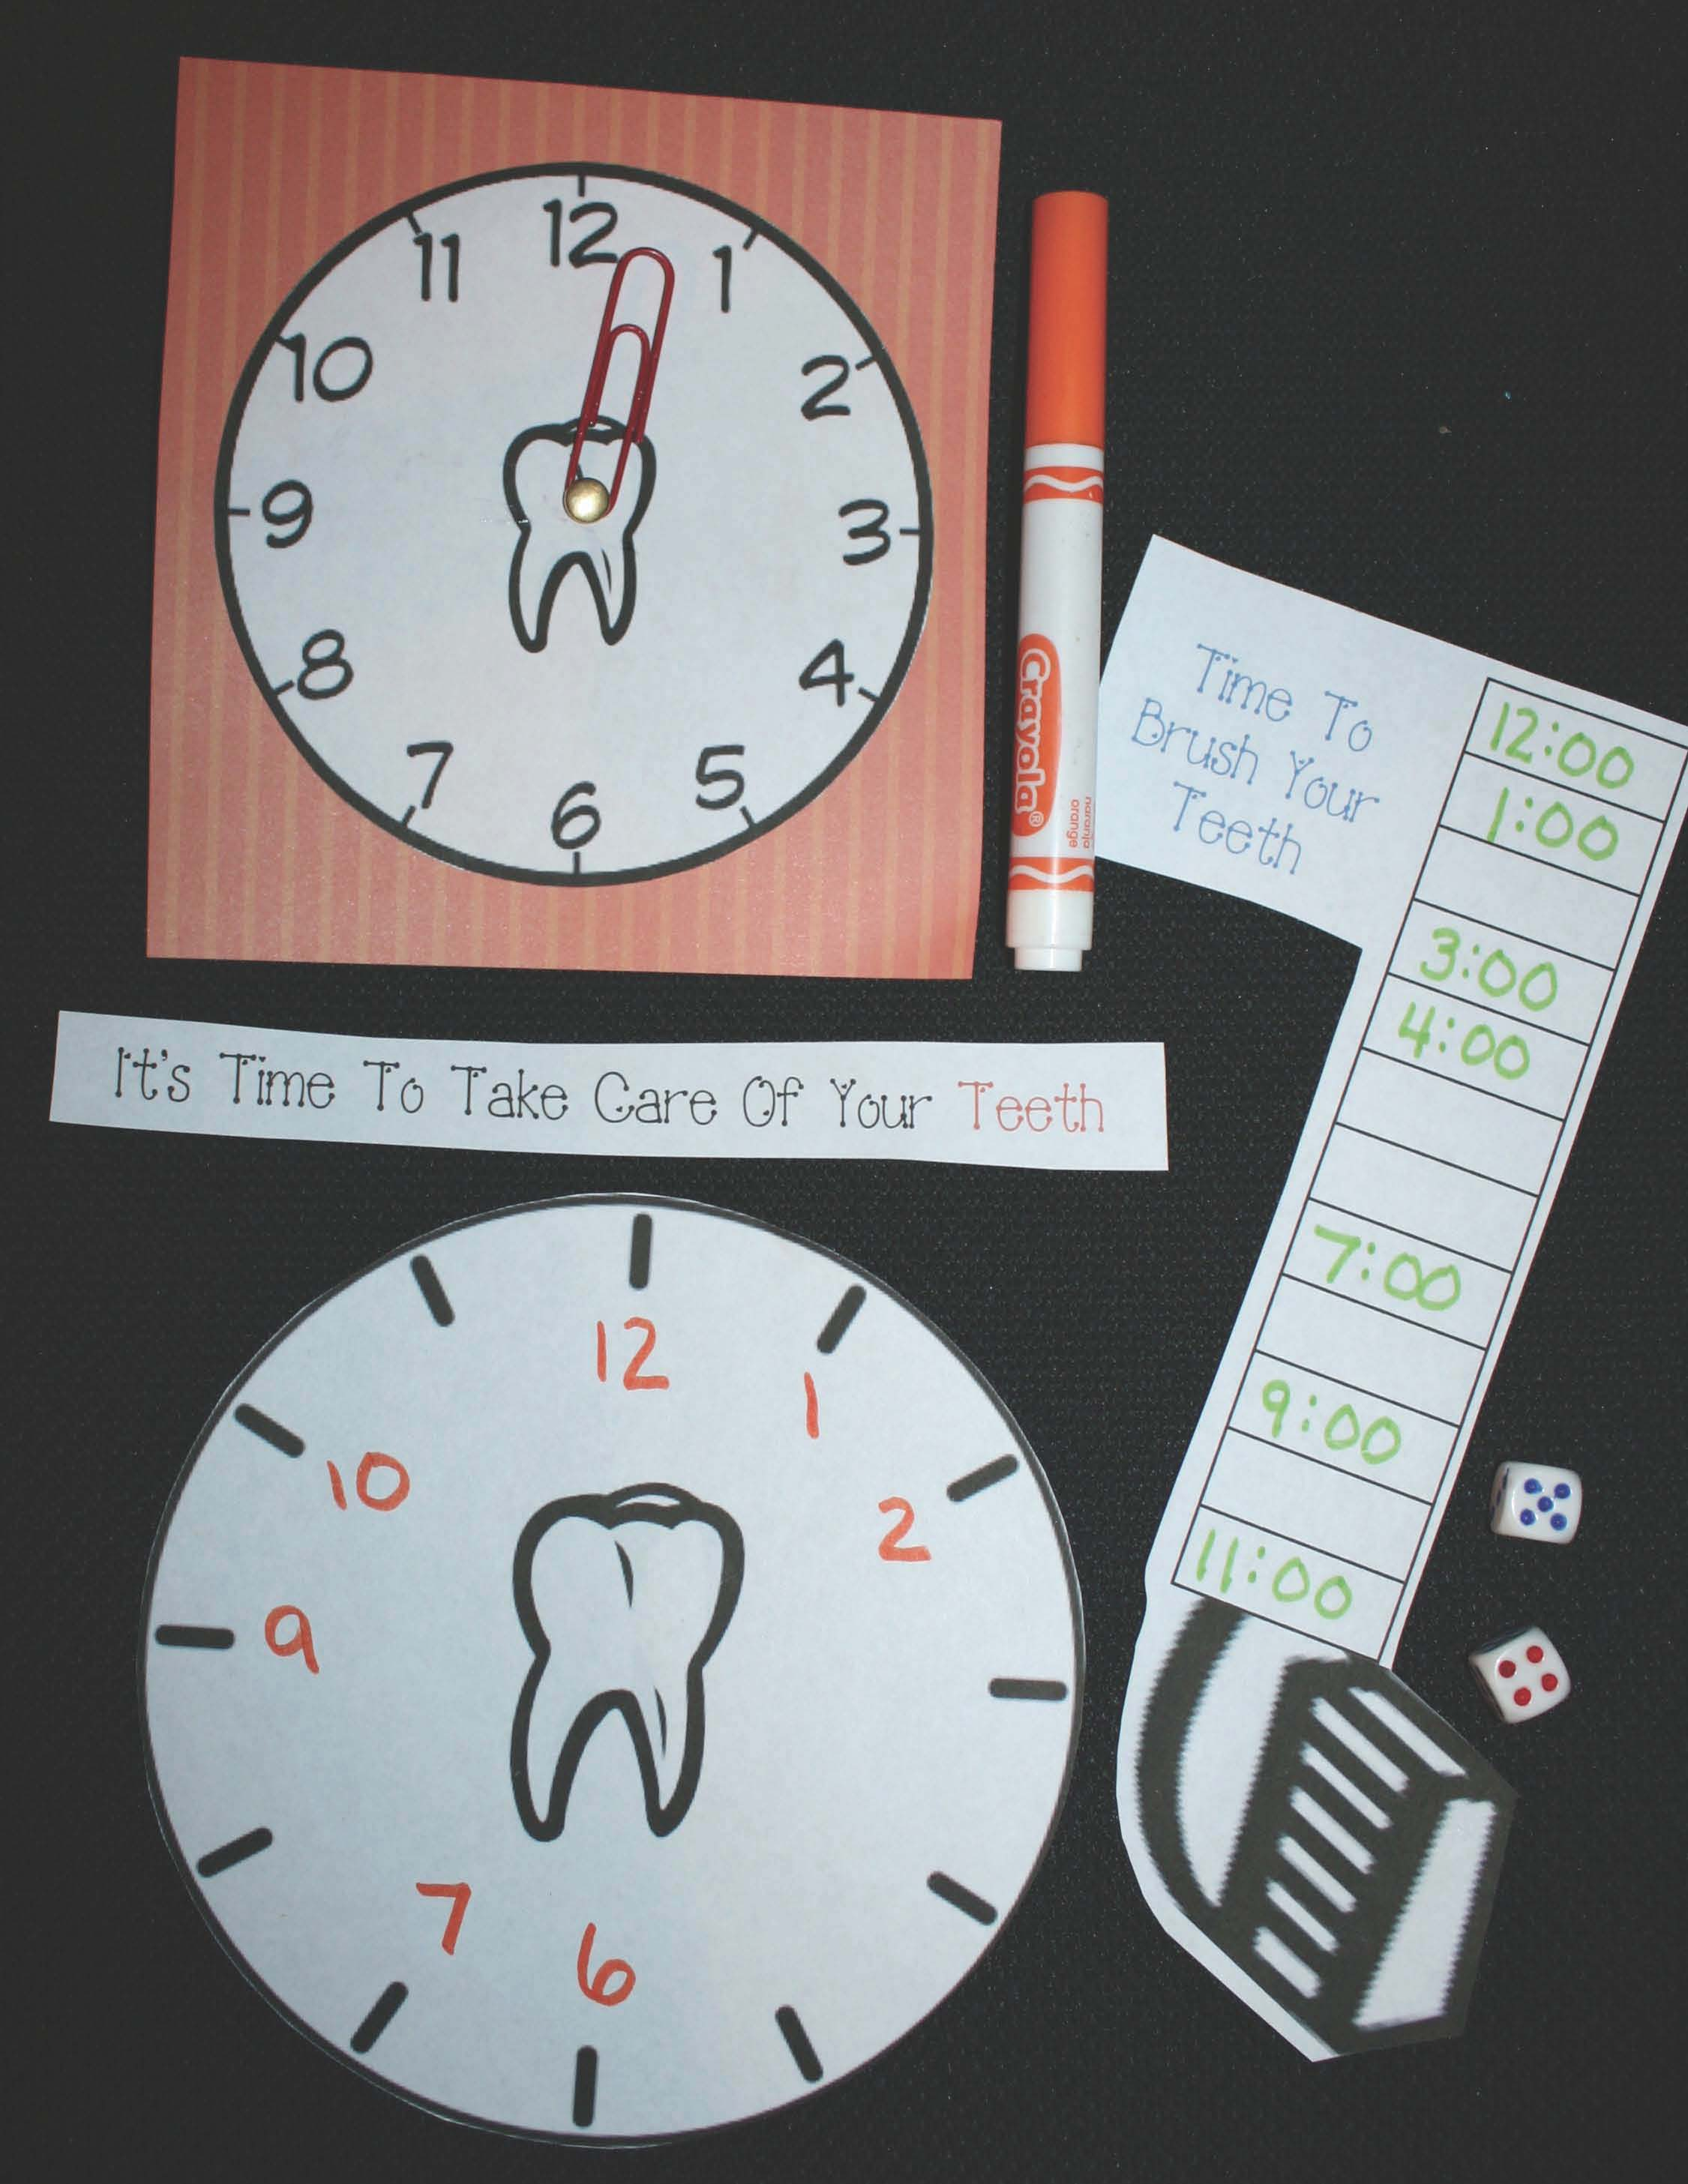 dental hygiene activities, dental hygiene lessons, dental hygiene crafts, dental hygiene writing prompts, dental hygiene alphabet cards, telling time activities, telling time games, analog and digital time activities, 1.MD.3 alphabet activities, alphabet games,